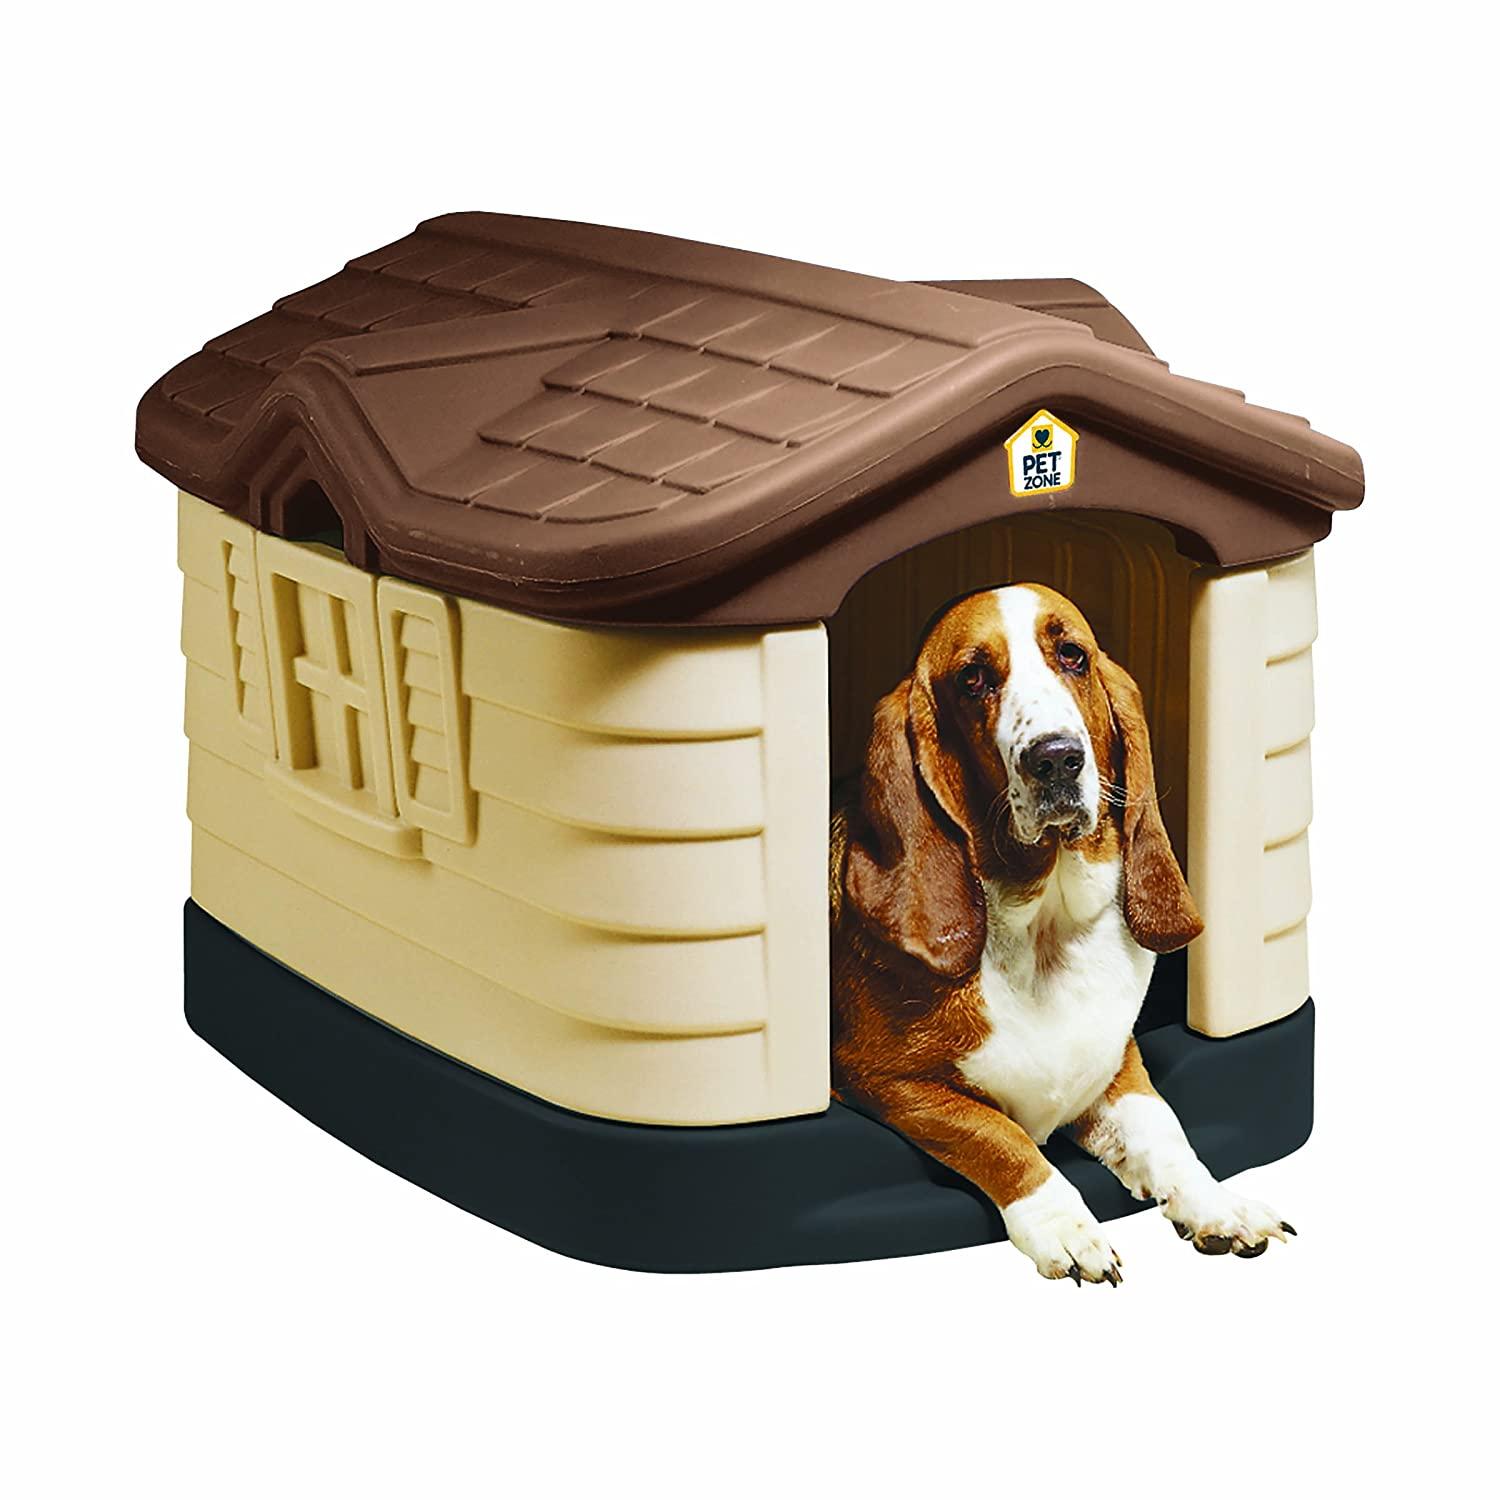 Petzone Plastic Dog House